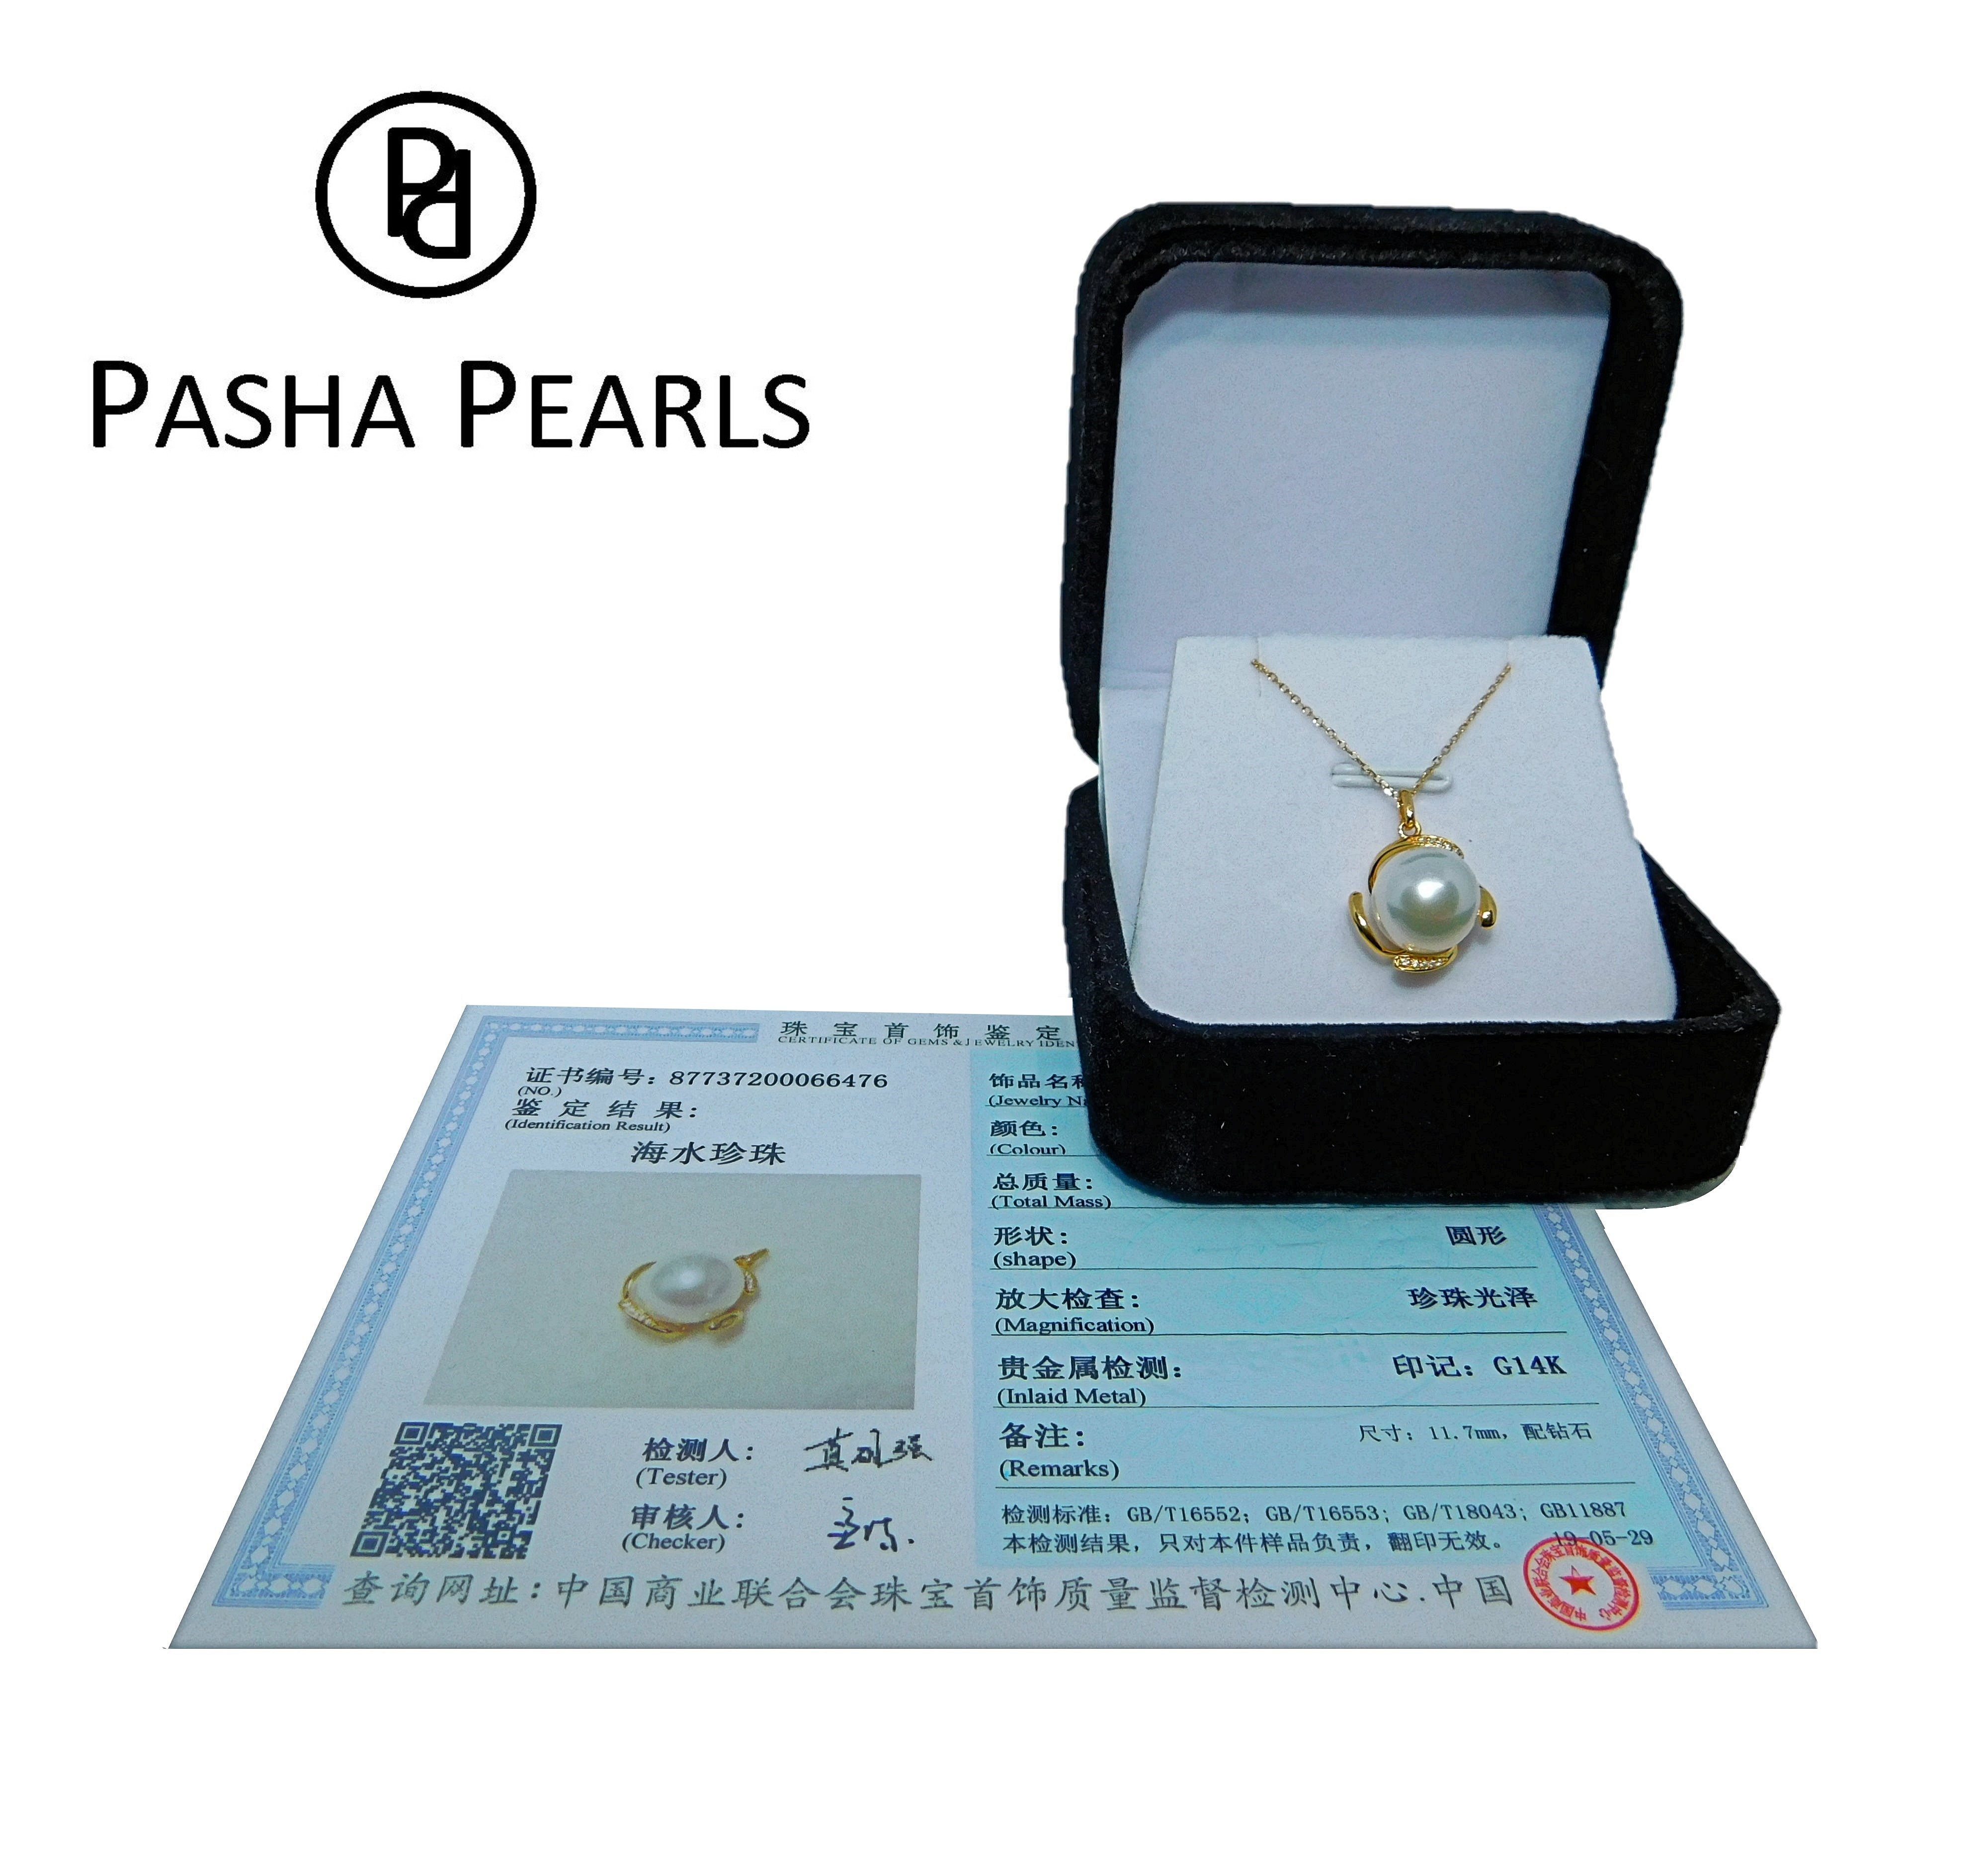 This exquisite pendant features an 10.0-11.0mm White South Sea Pearl, handpicked for its luminous luster